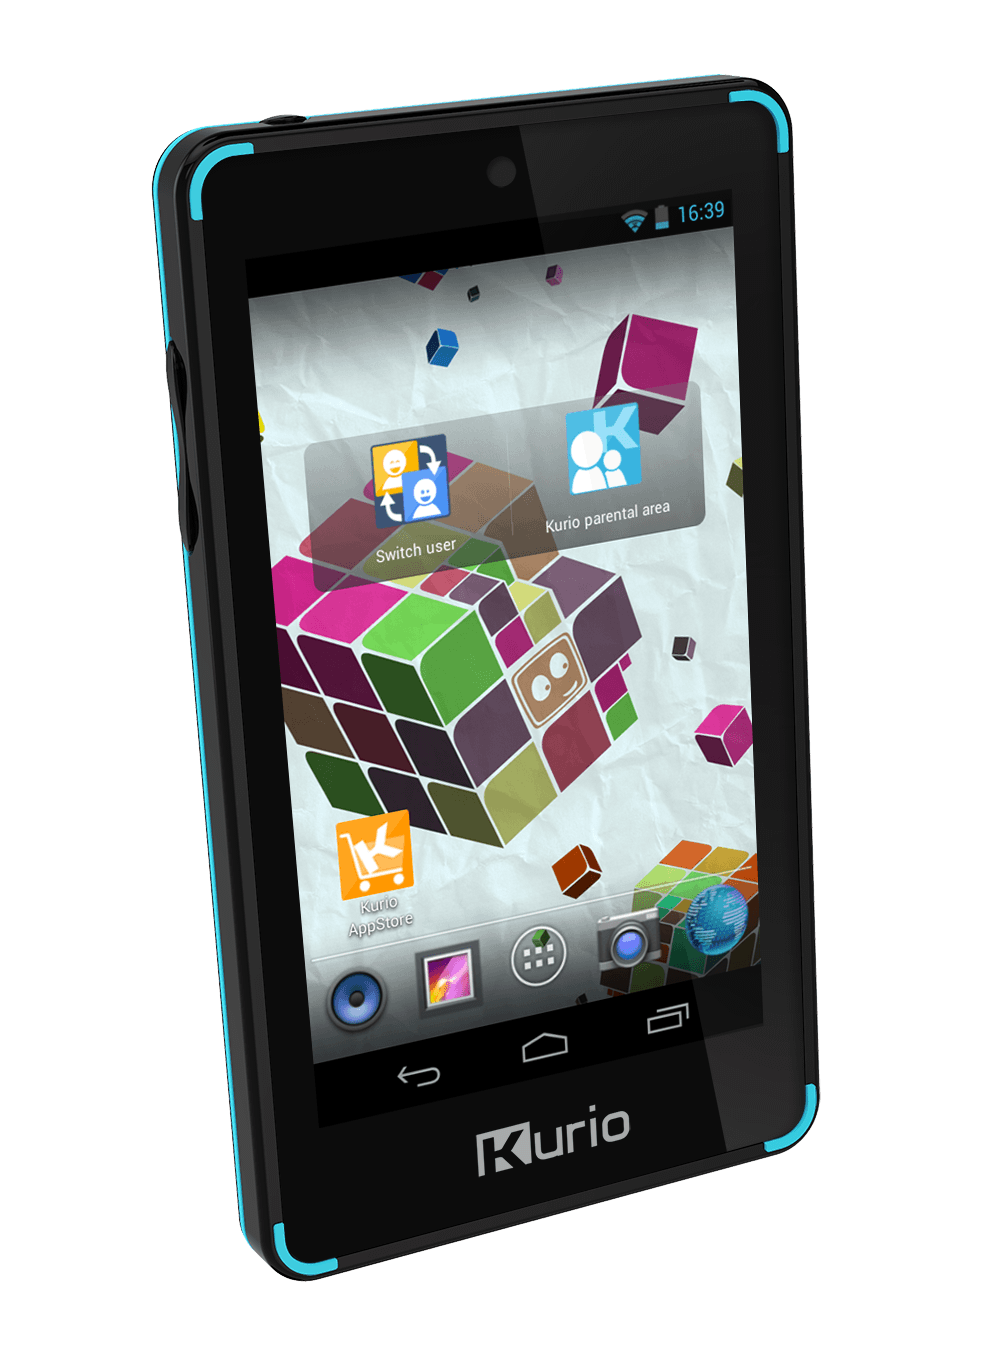 e8c9dbb5a23d The Kurio tablet is one of the top kid toys this season. The Android tablet